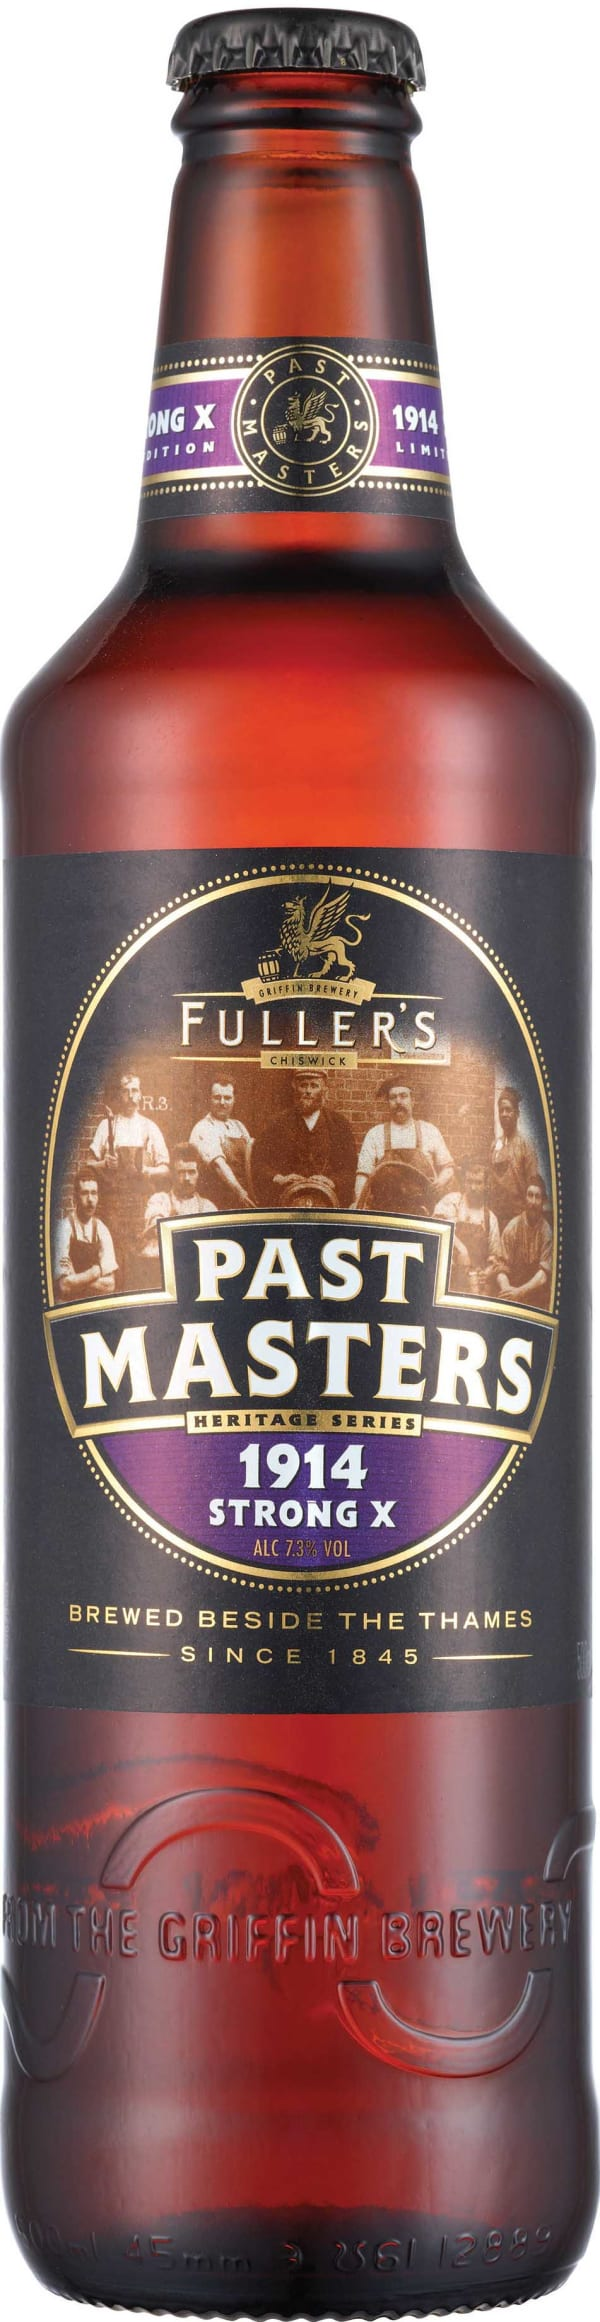 Fuller's Past Masters 1914